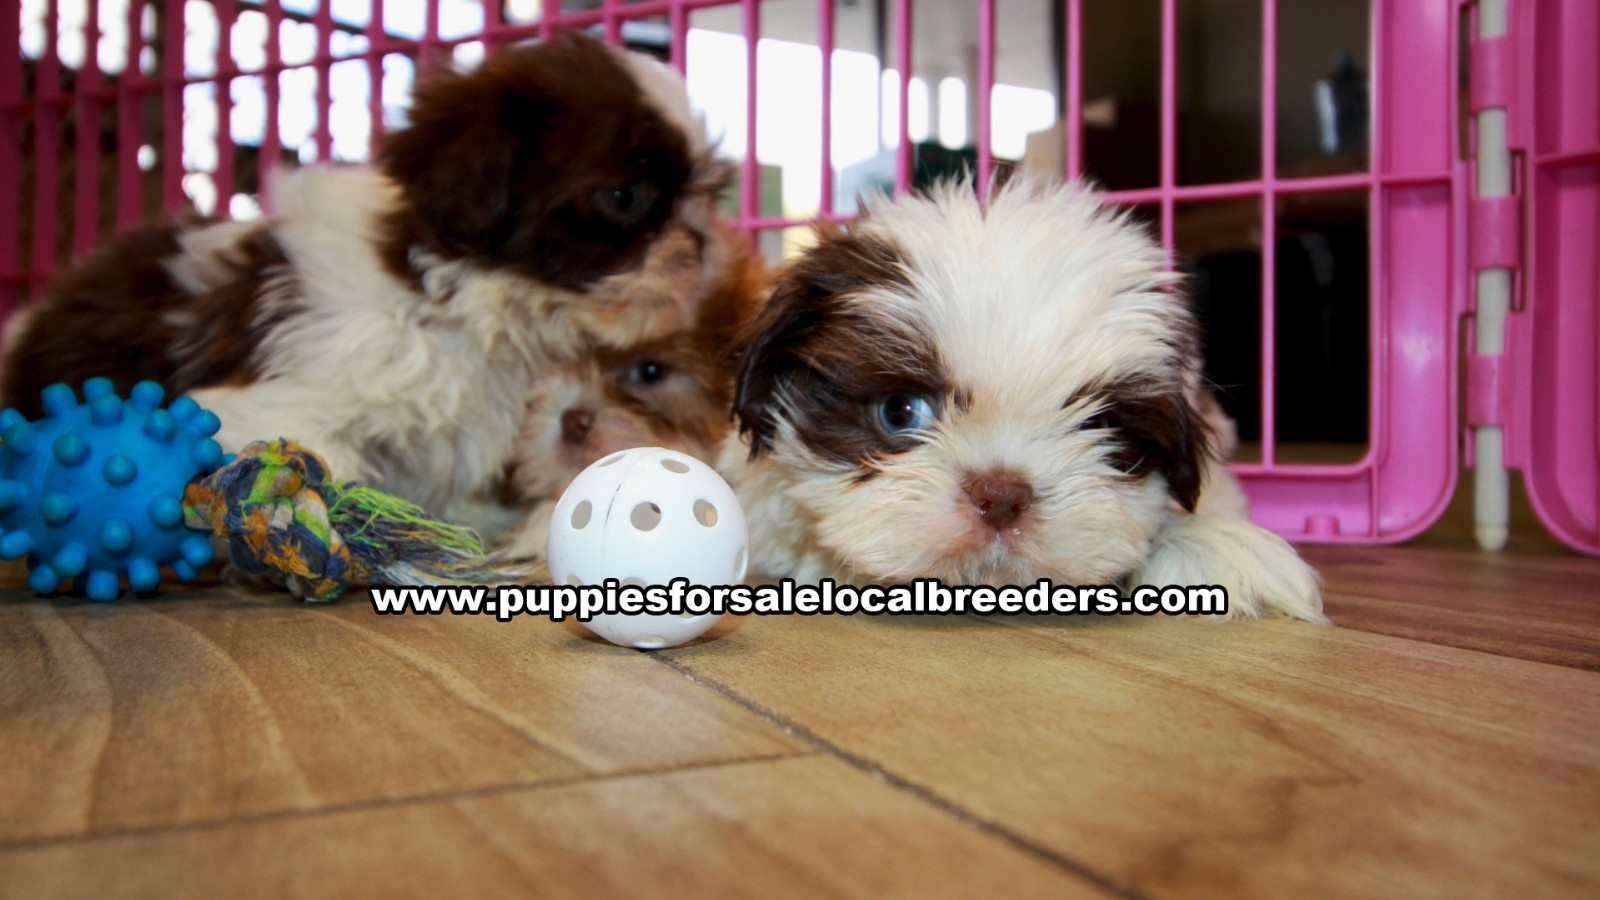 Chocolate Shih Tzu, Puppies For Sale In Georgia, Local Breeders, Near Atlanta, Ga